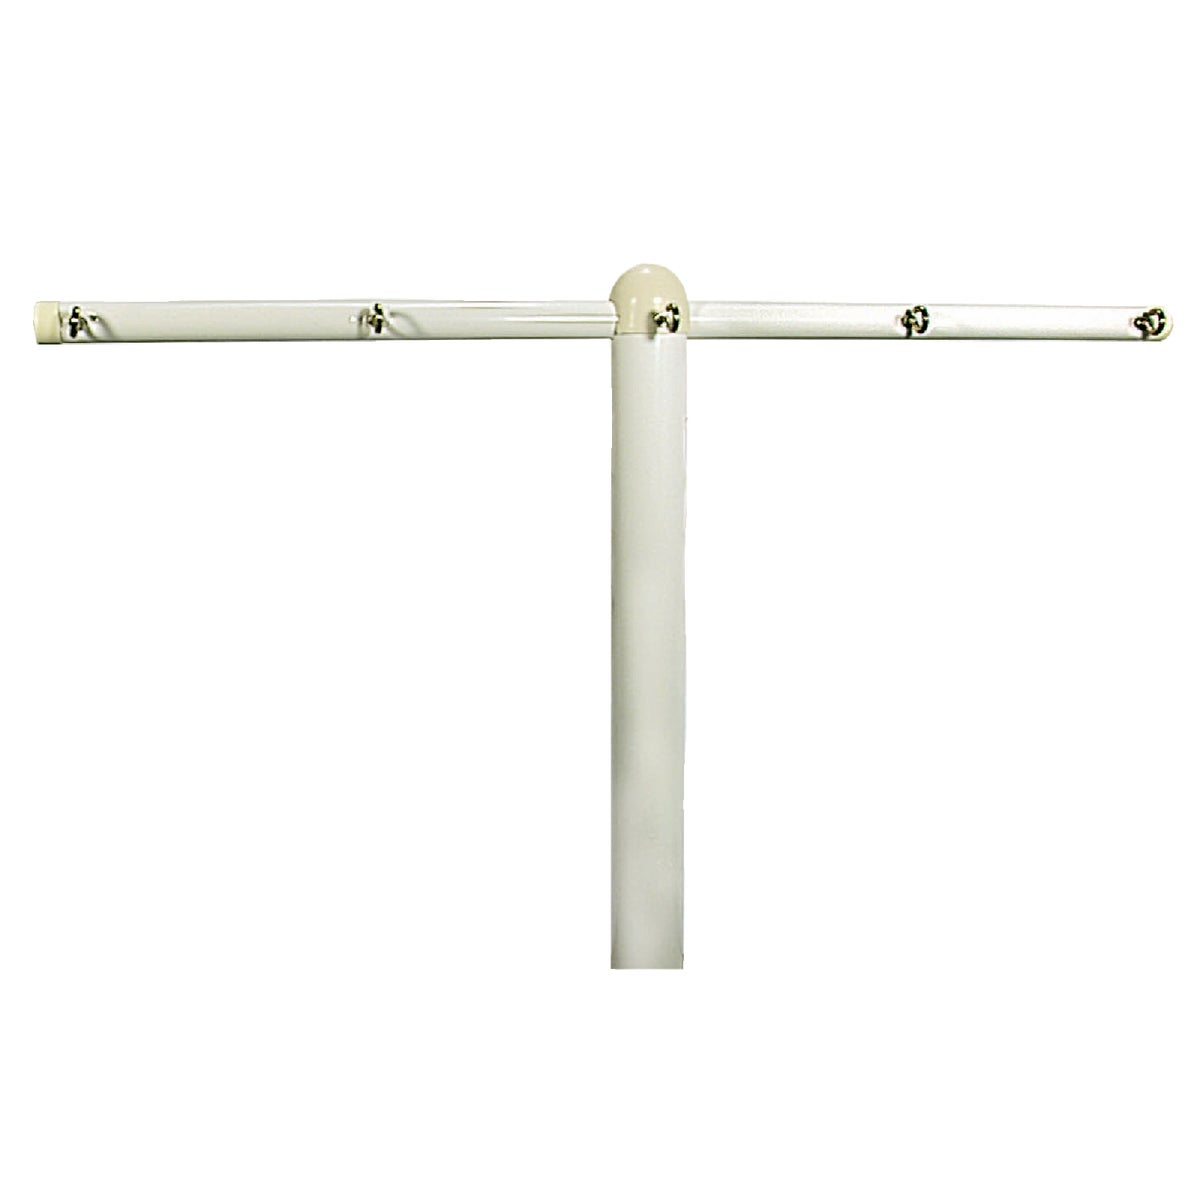 CLOTHESLINE POST - FT-30 by Household Essentials